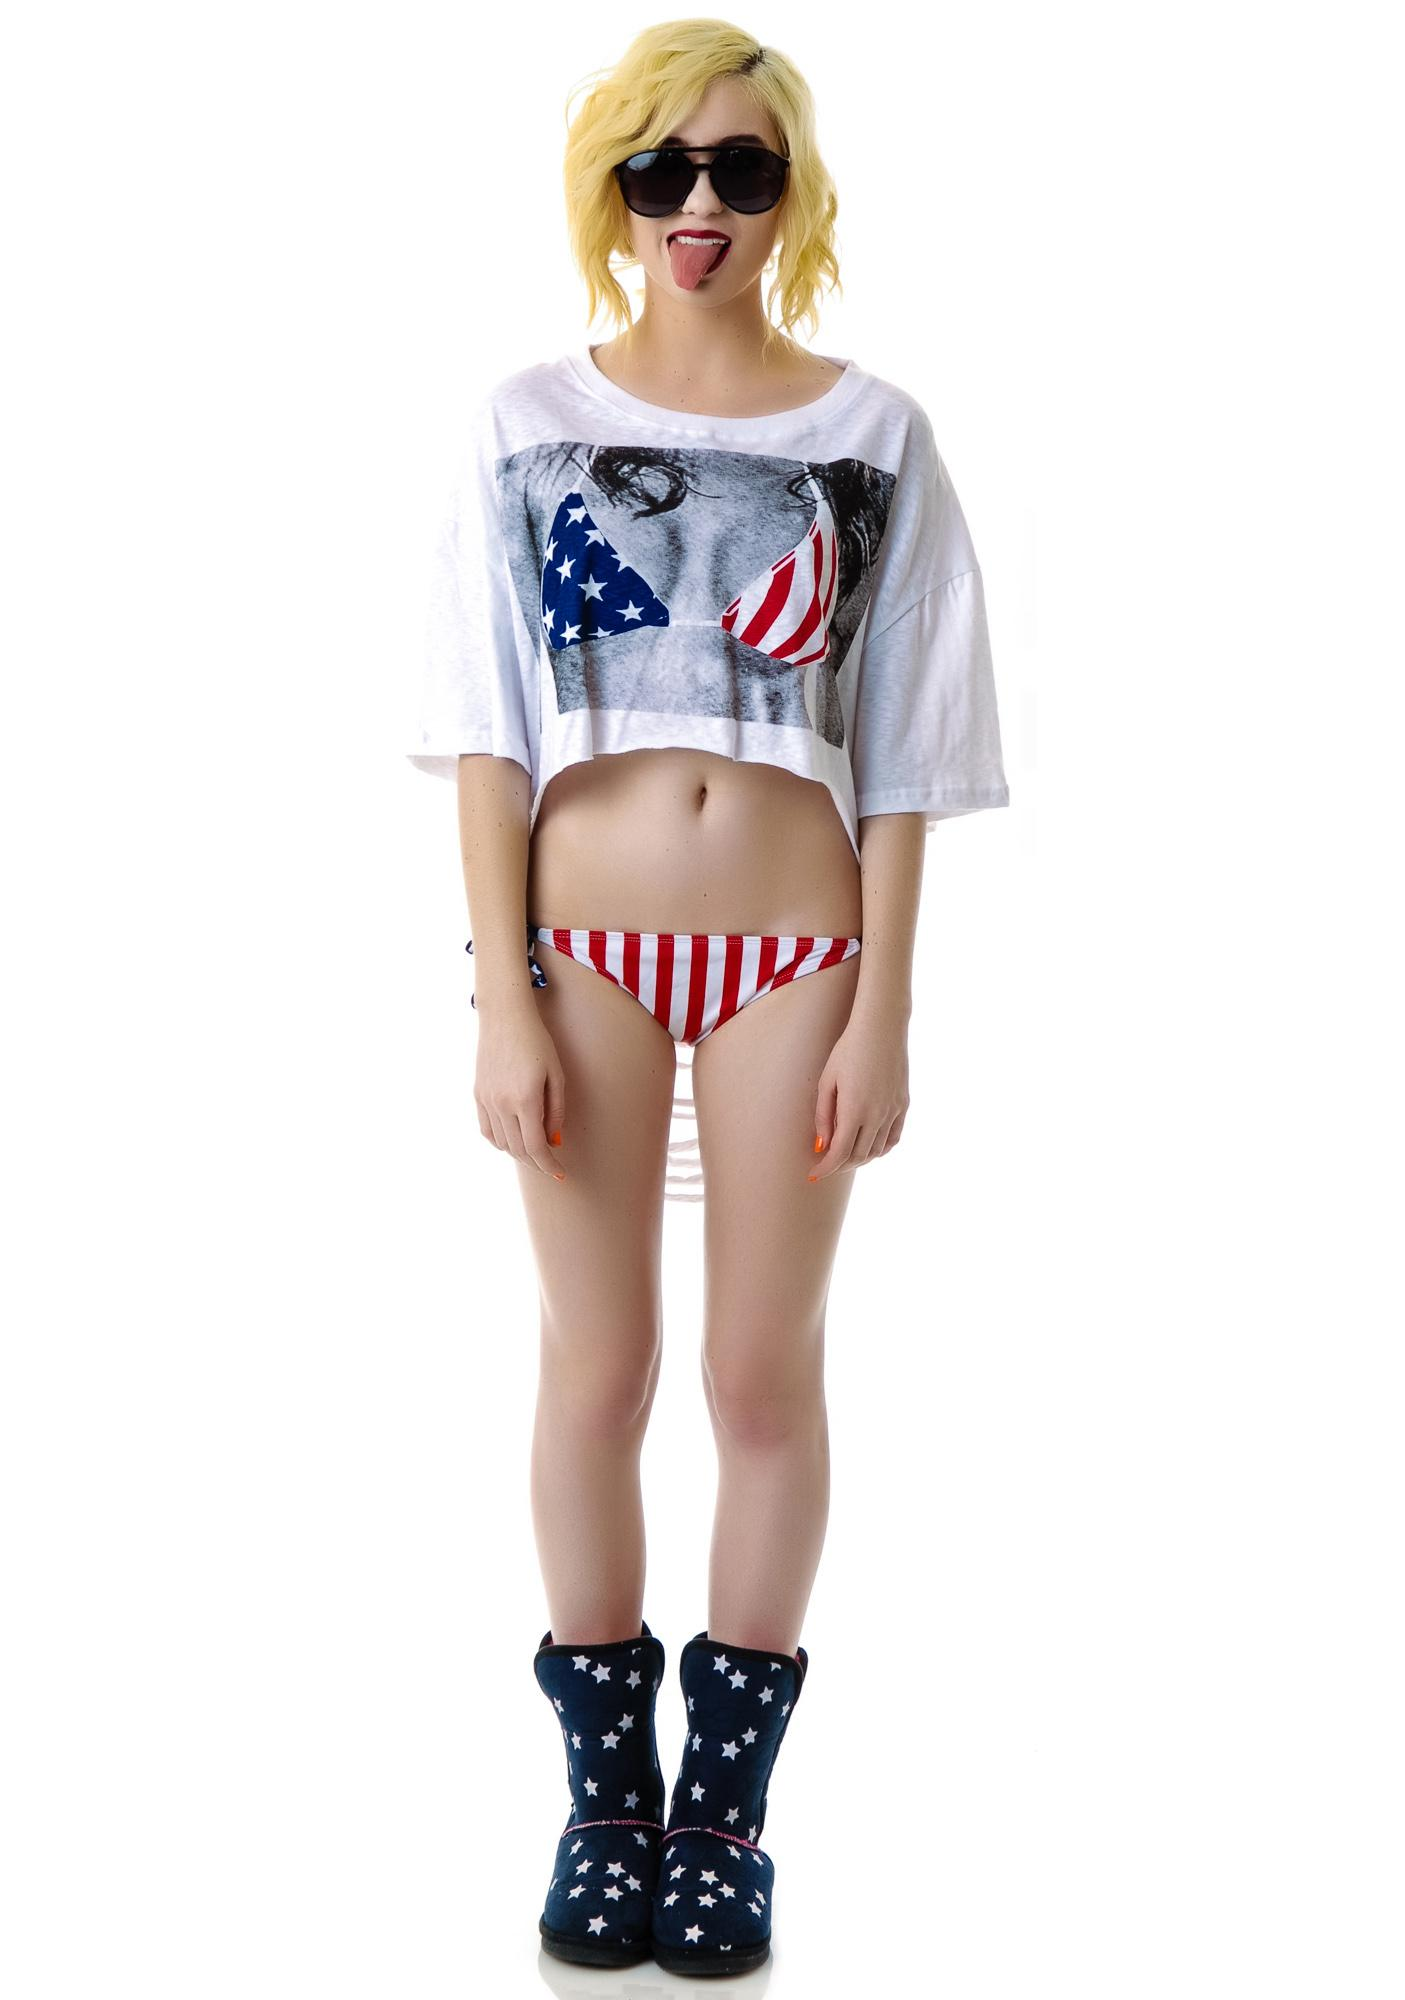 USA Shredded Bikini Shirt